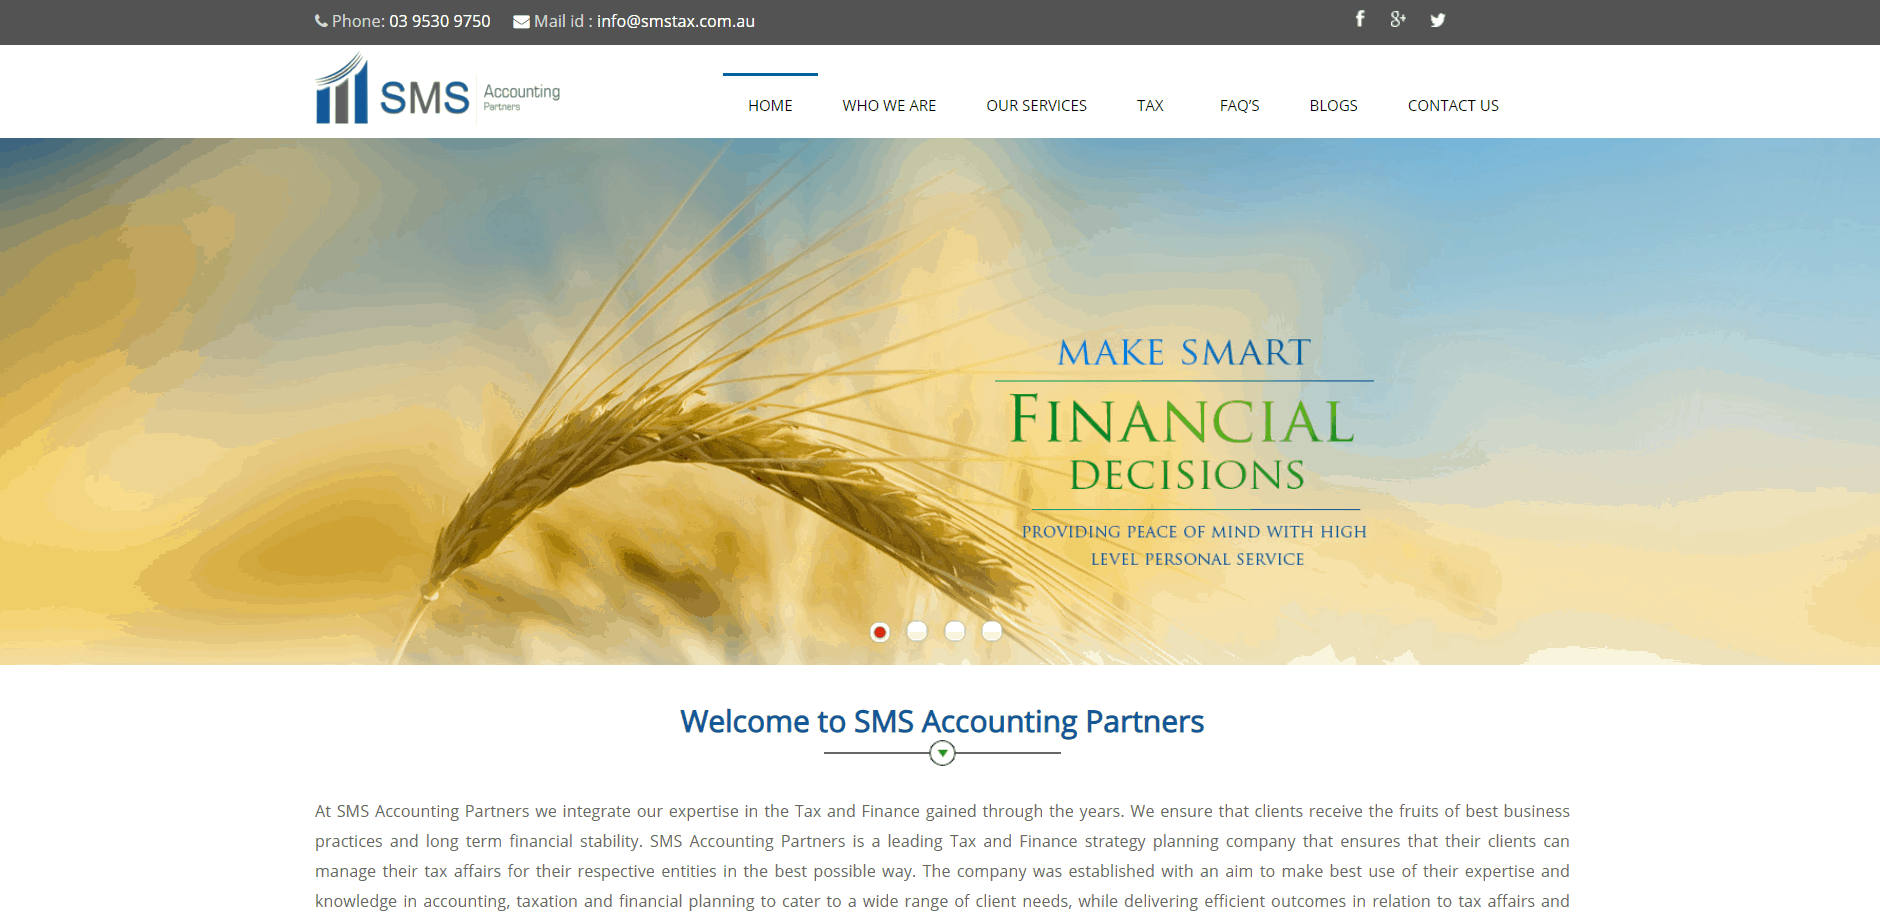 Sms Accounting